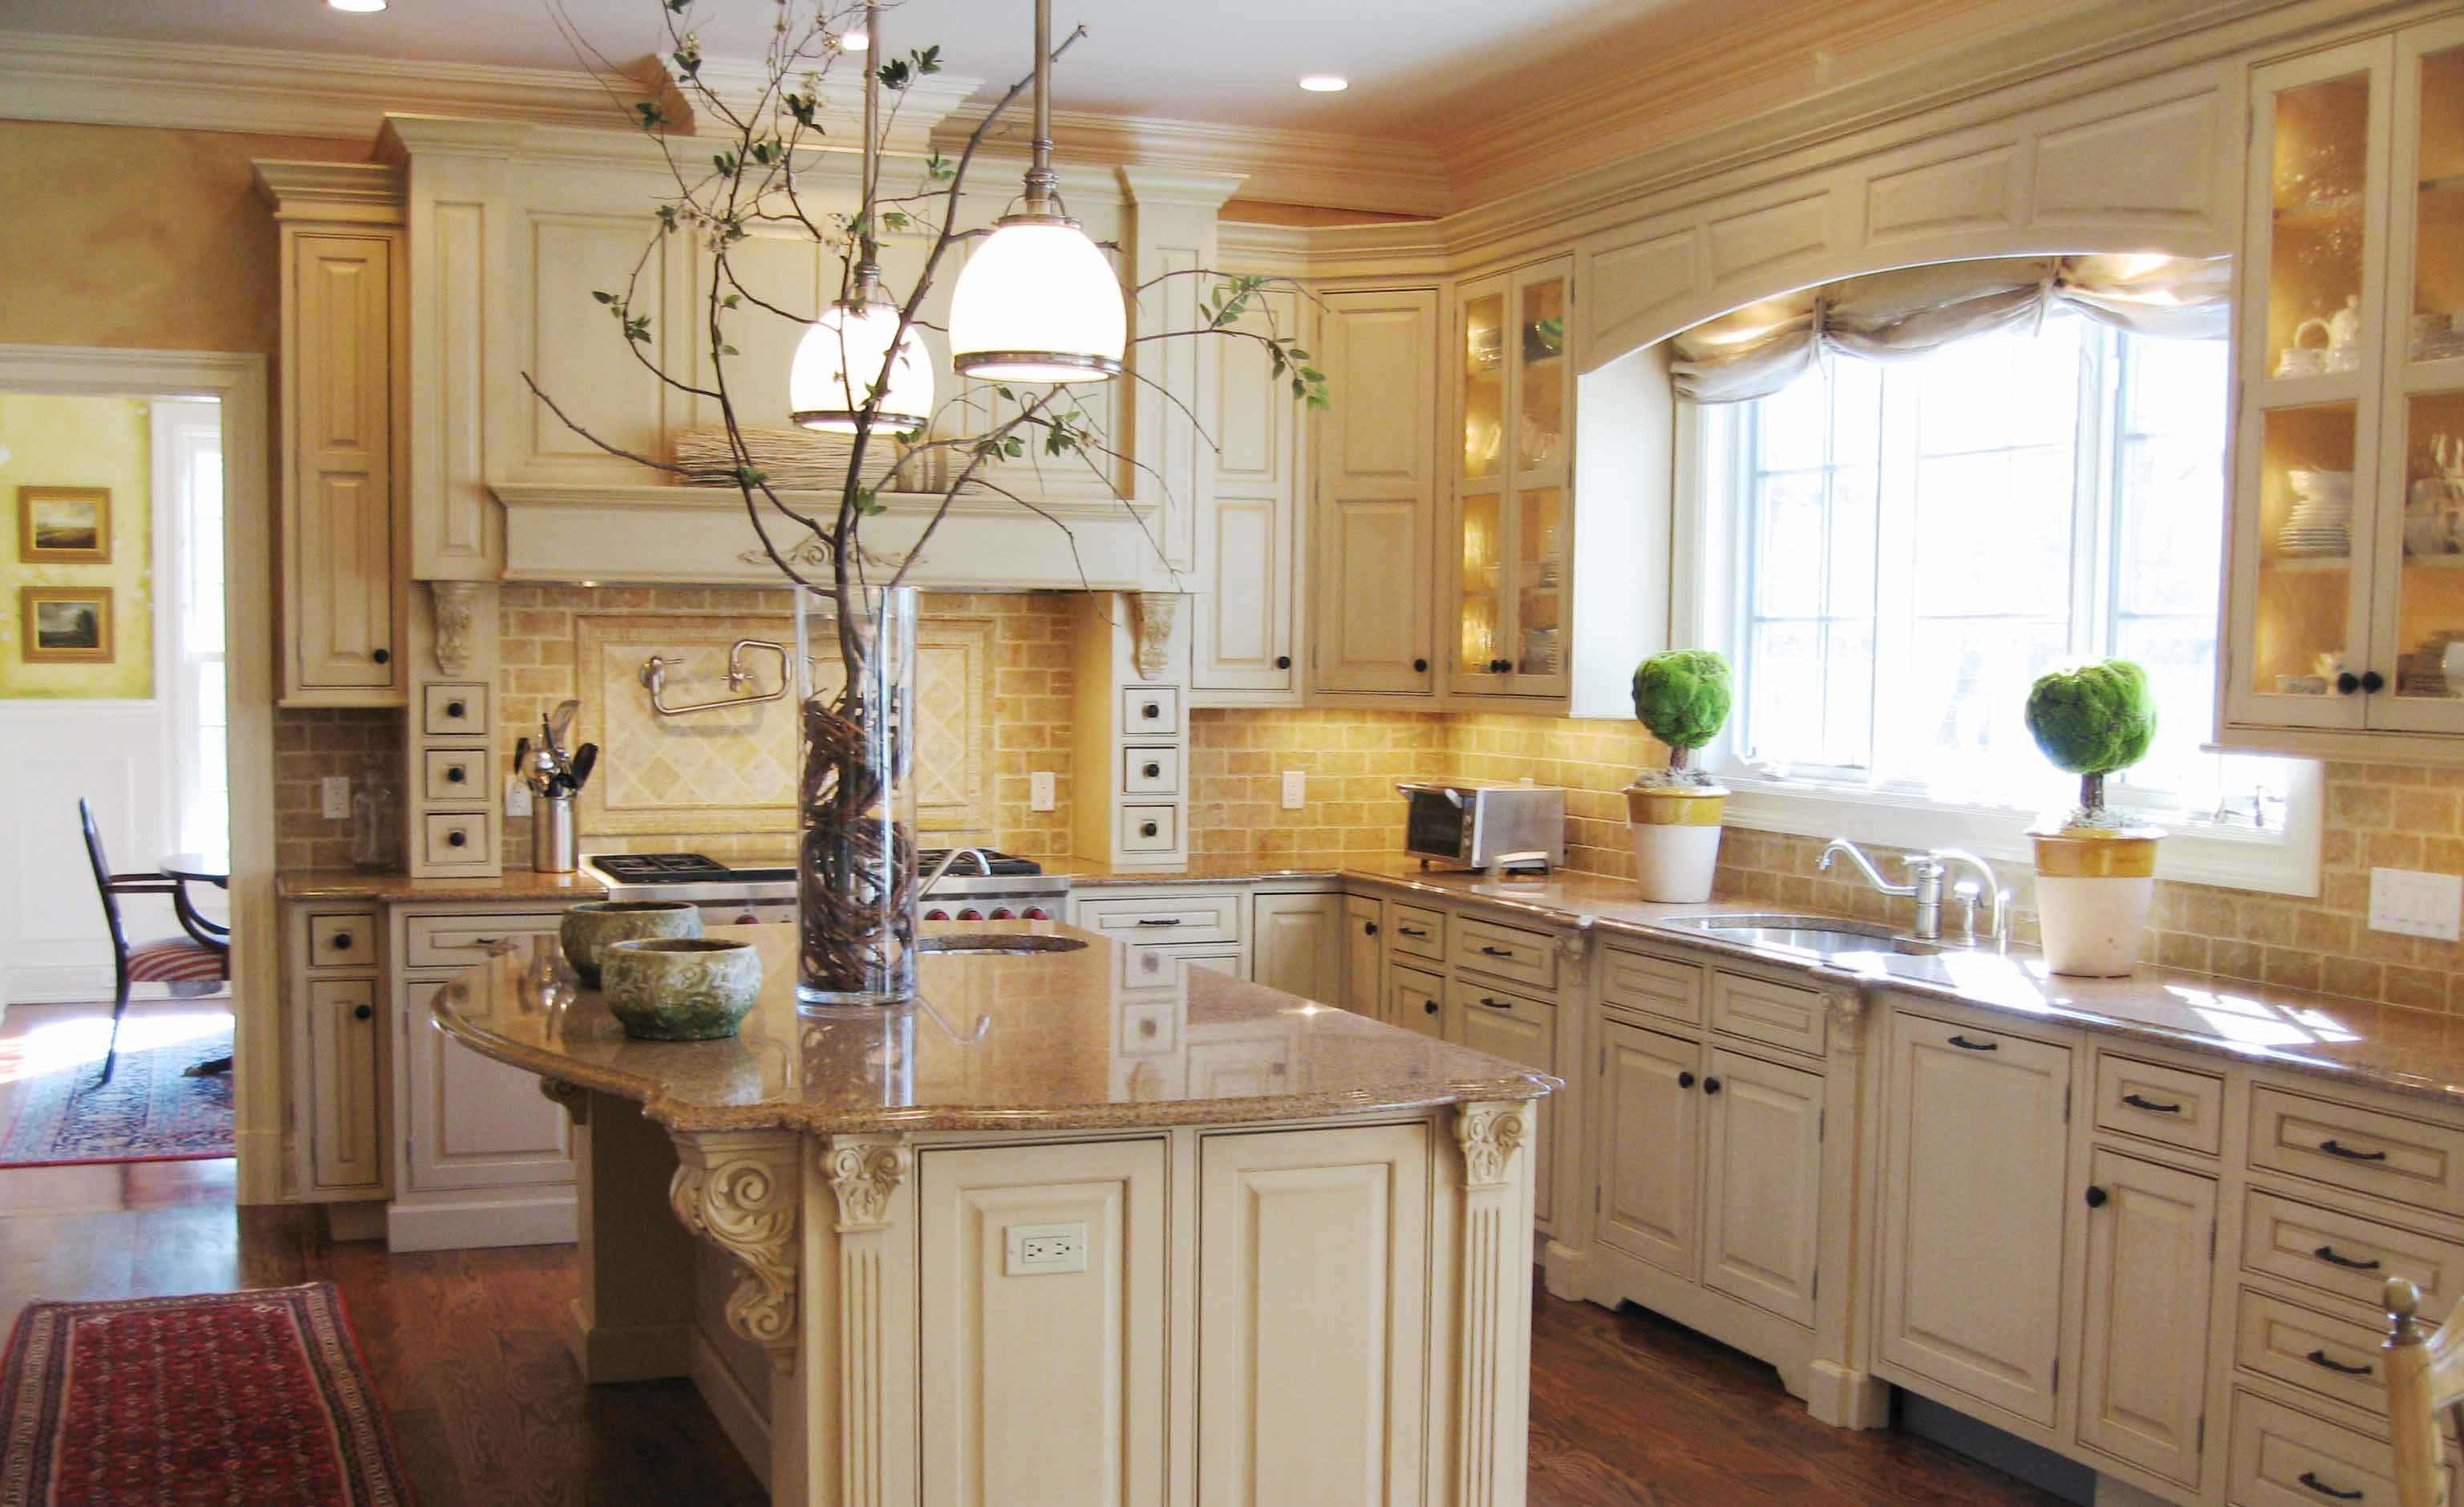 Best ideas about Tuscany Kitchen Decor . Save or Pin Tuscan Style Kitchen Cabinet with White and Wooden Tone Now.